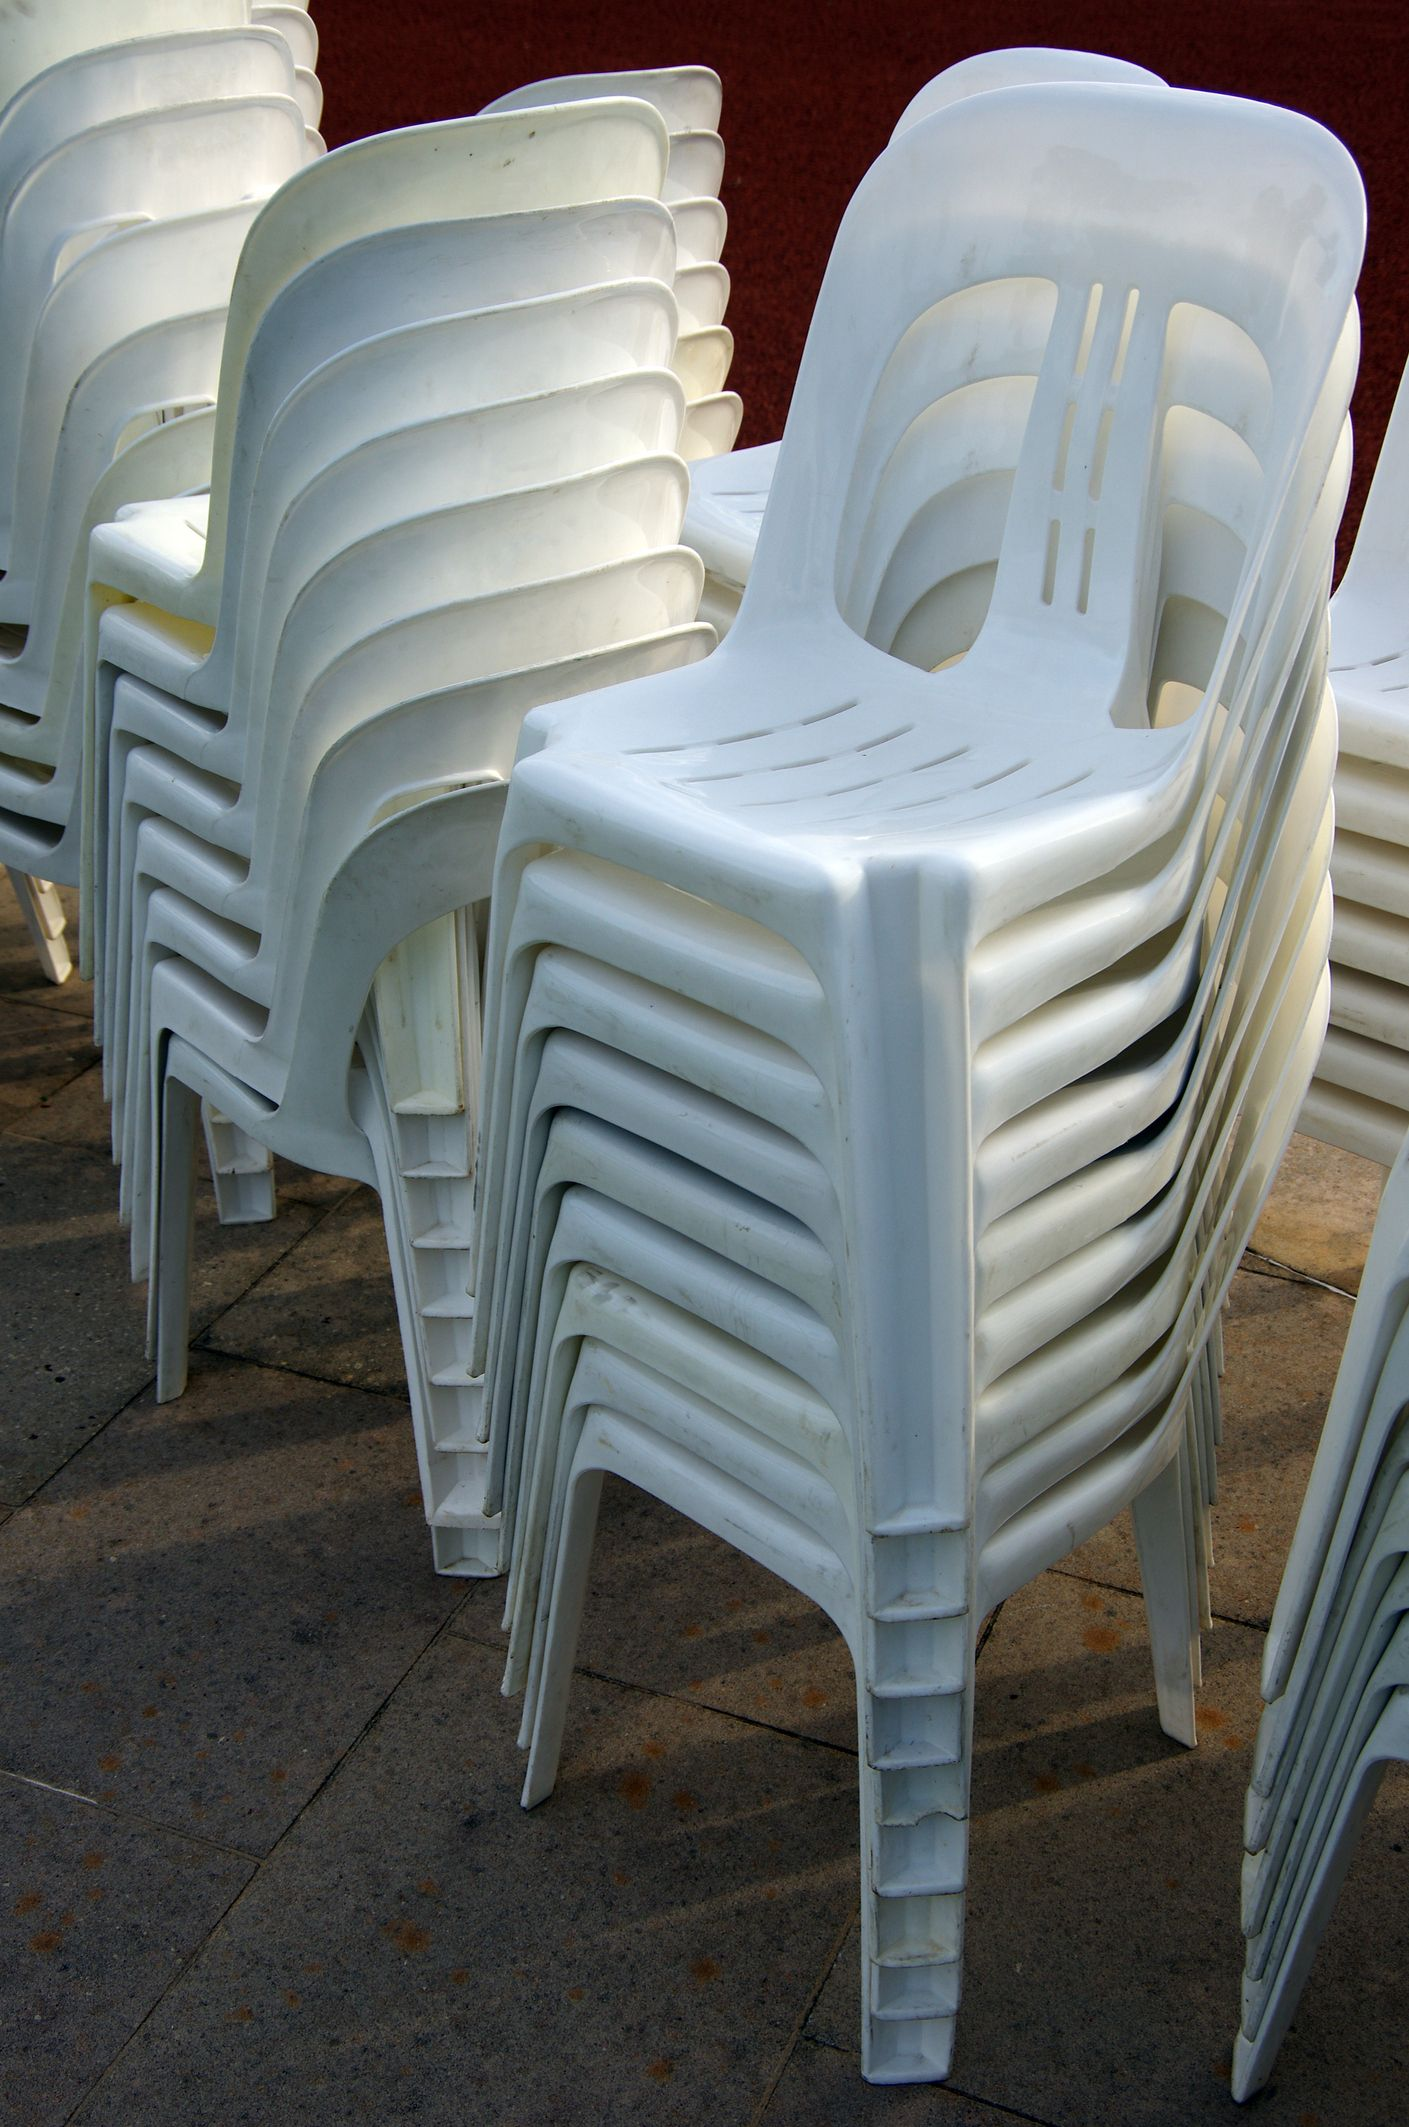 types of chairs 50 iconic chairs you